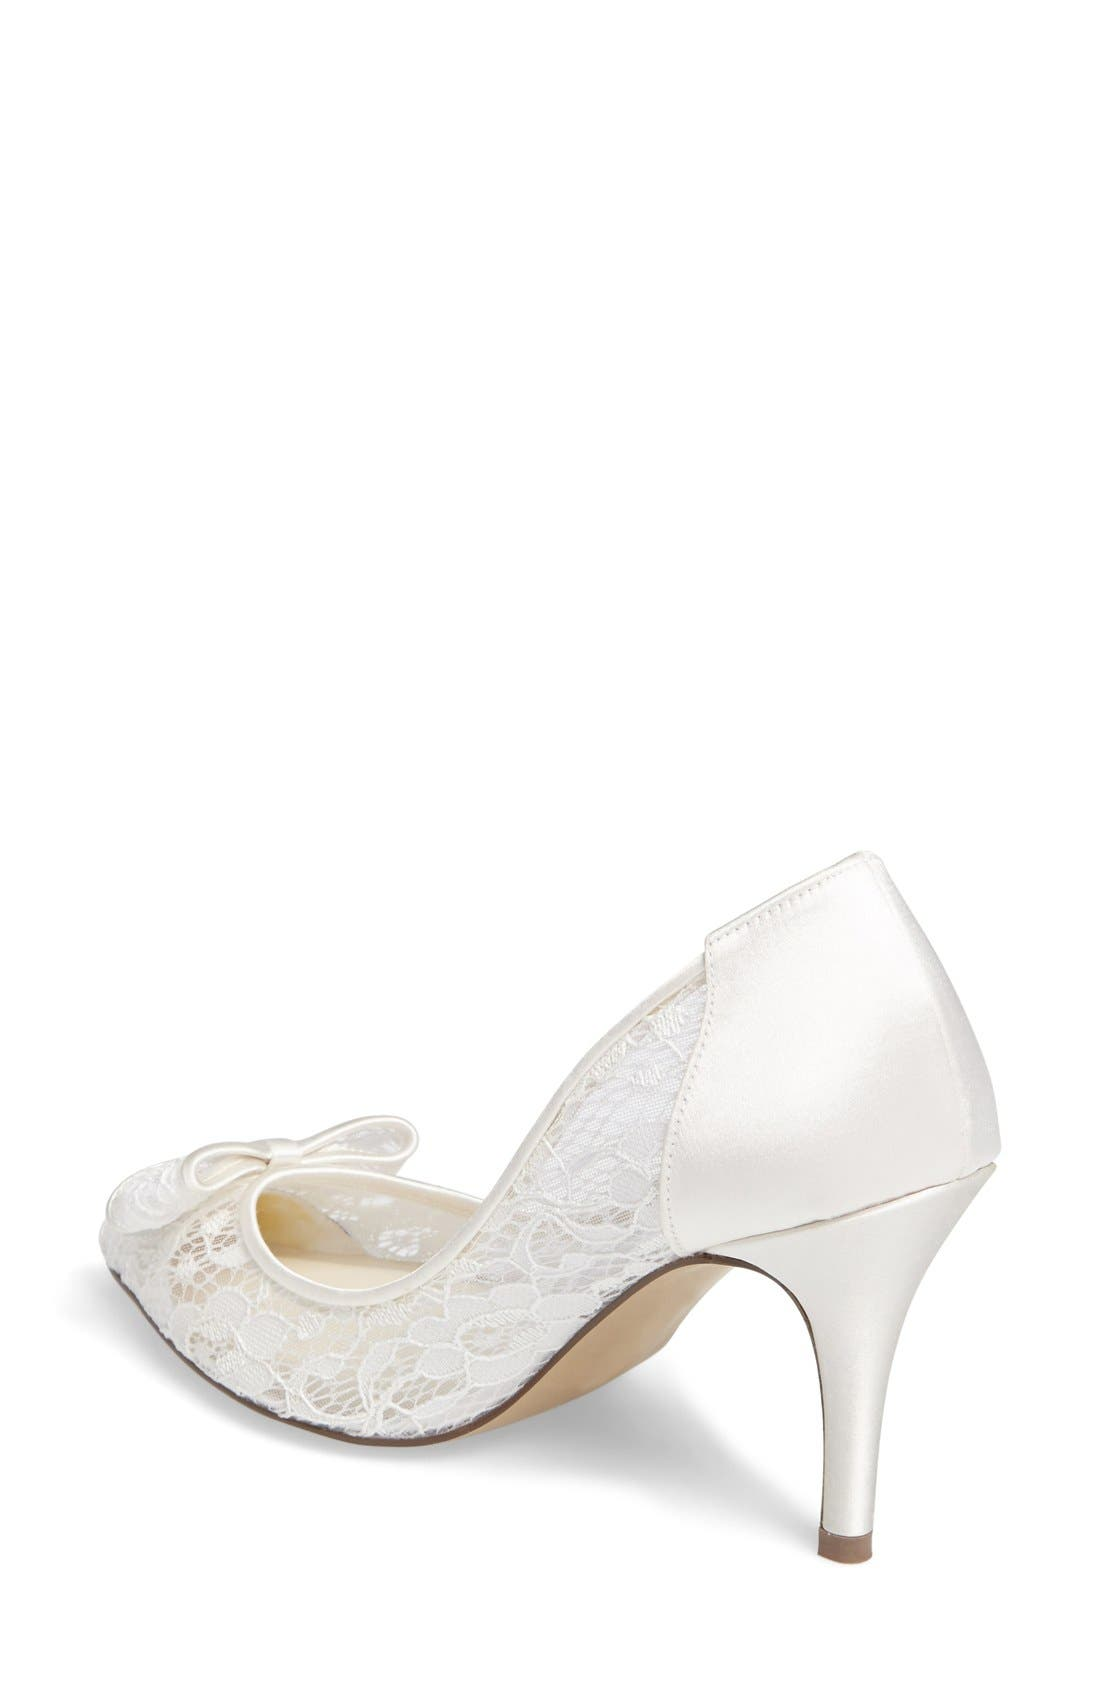 Promise Pointy Toe Lace Pump,                             Alternate thumbnail 2, color,                             900